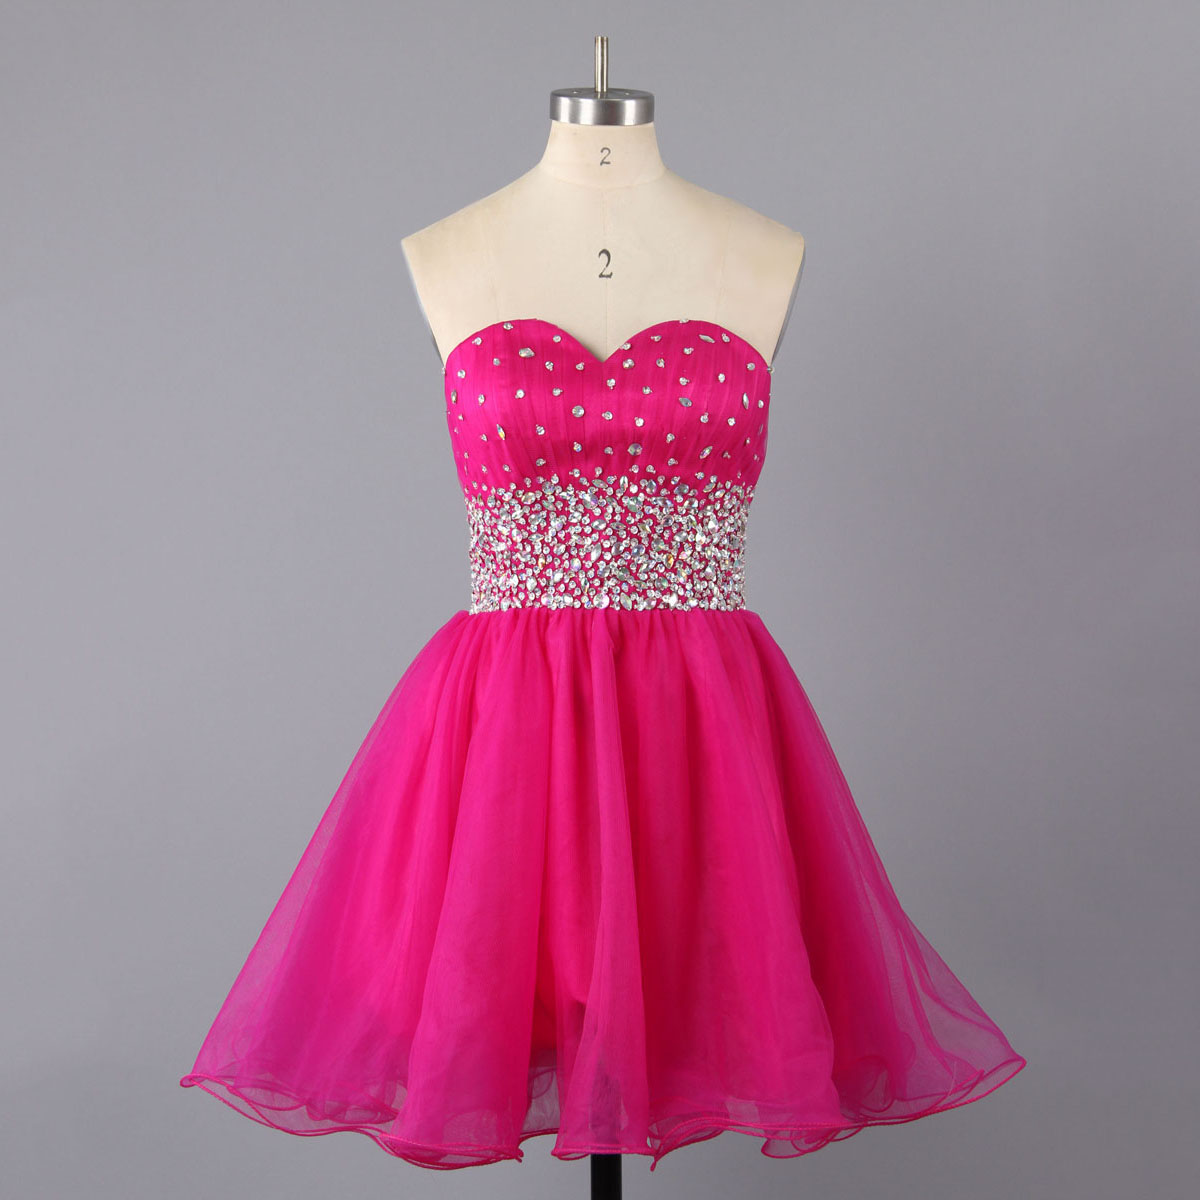 Hot Pink Sweetheart Homecoming Dresses, Begonia A-line Tulle Homecoming Dresses, Short Homecoming Dresses with Crystal Beaded Details, #02111410